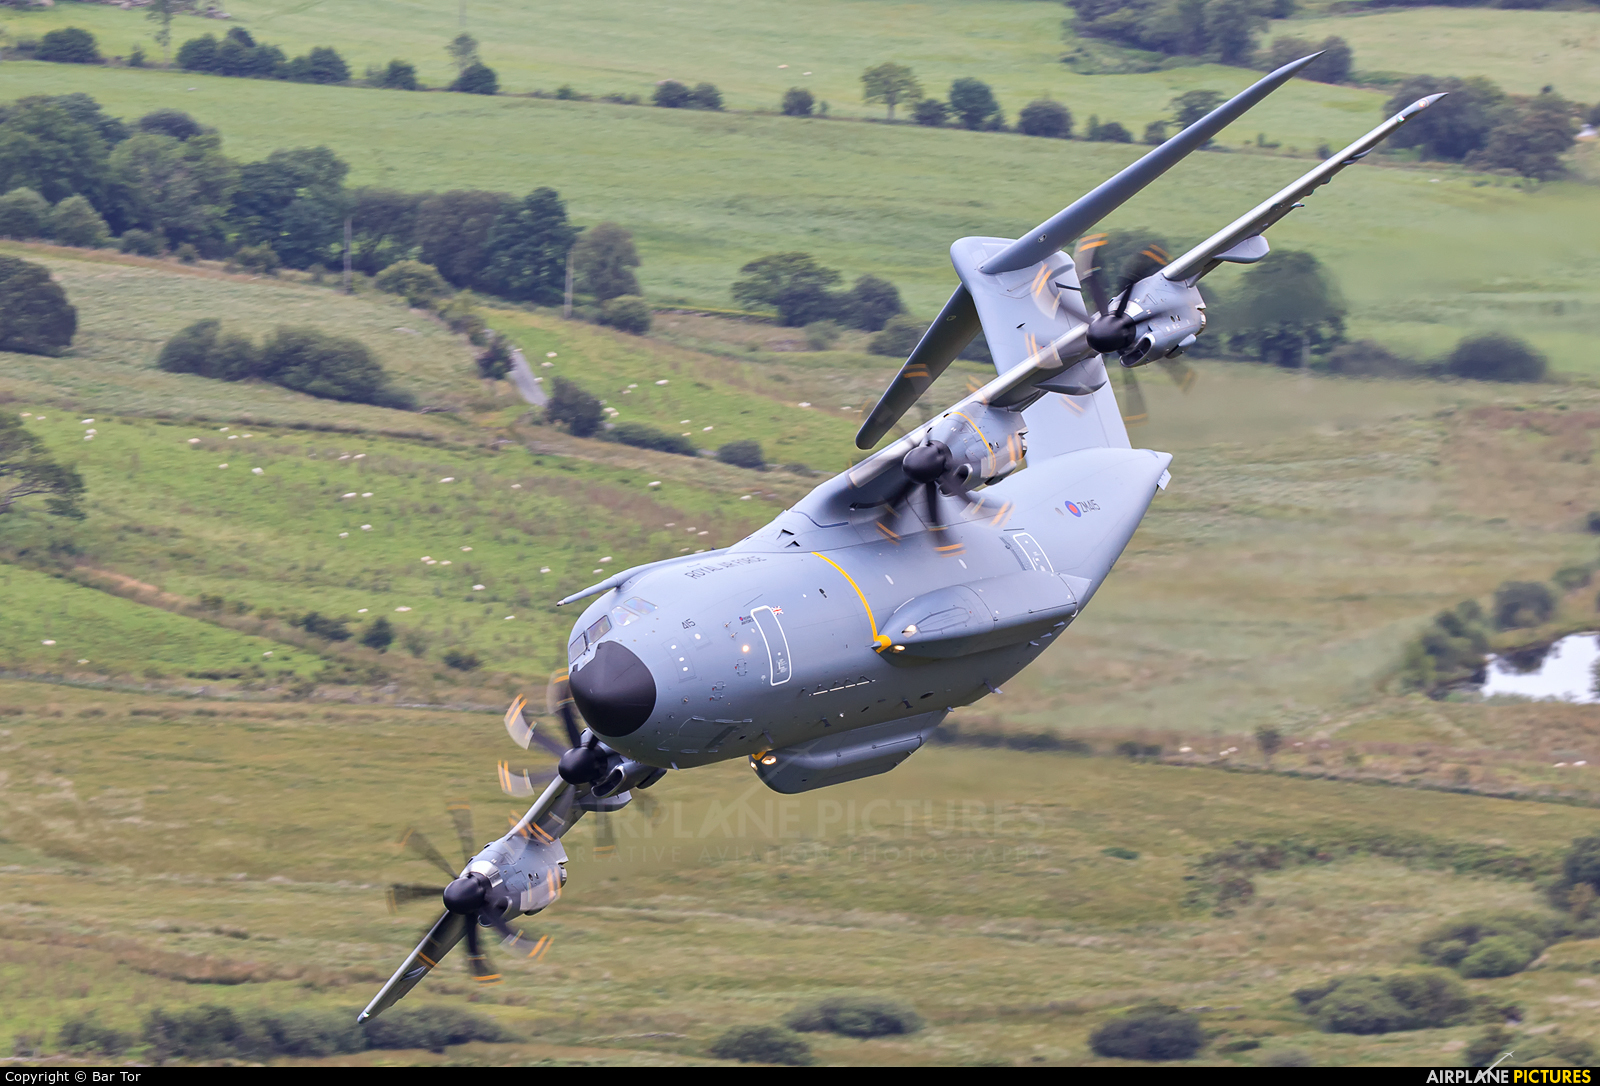 Royal Air Force ZM415 aircraft at Machynlleth Loop - LFA 7